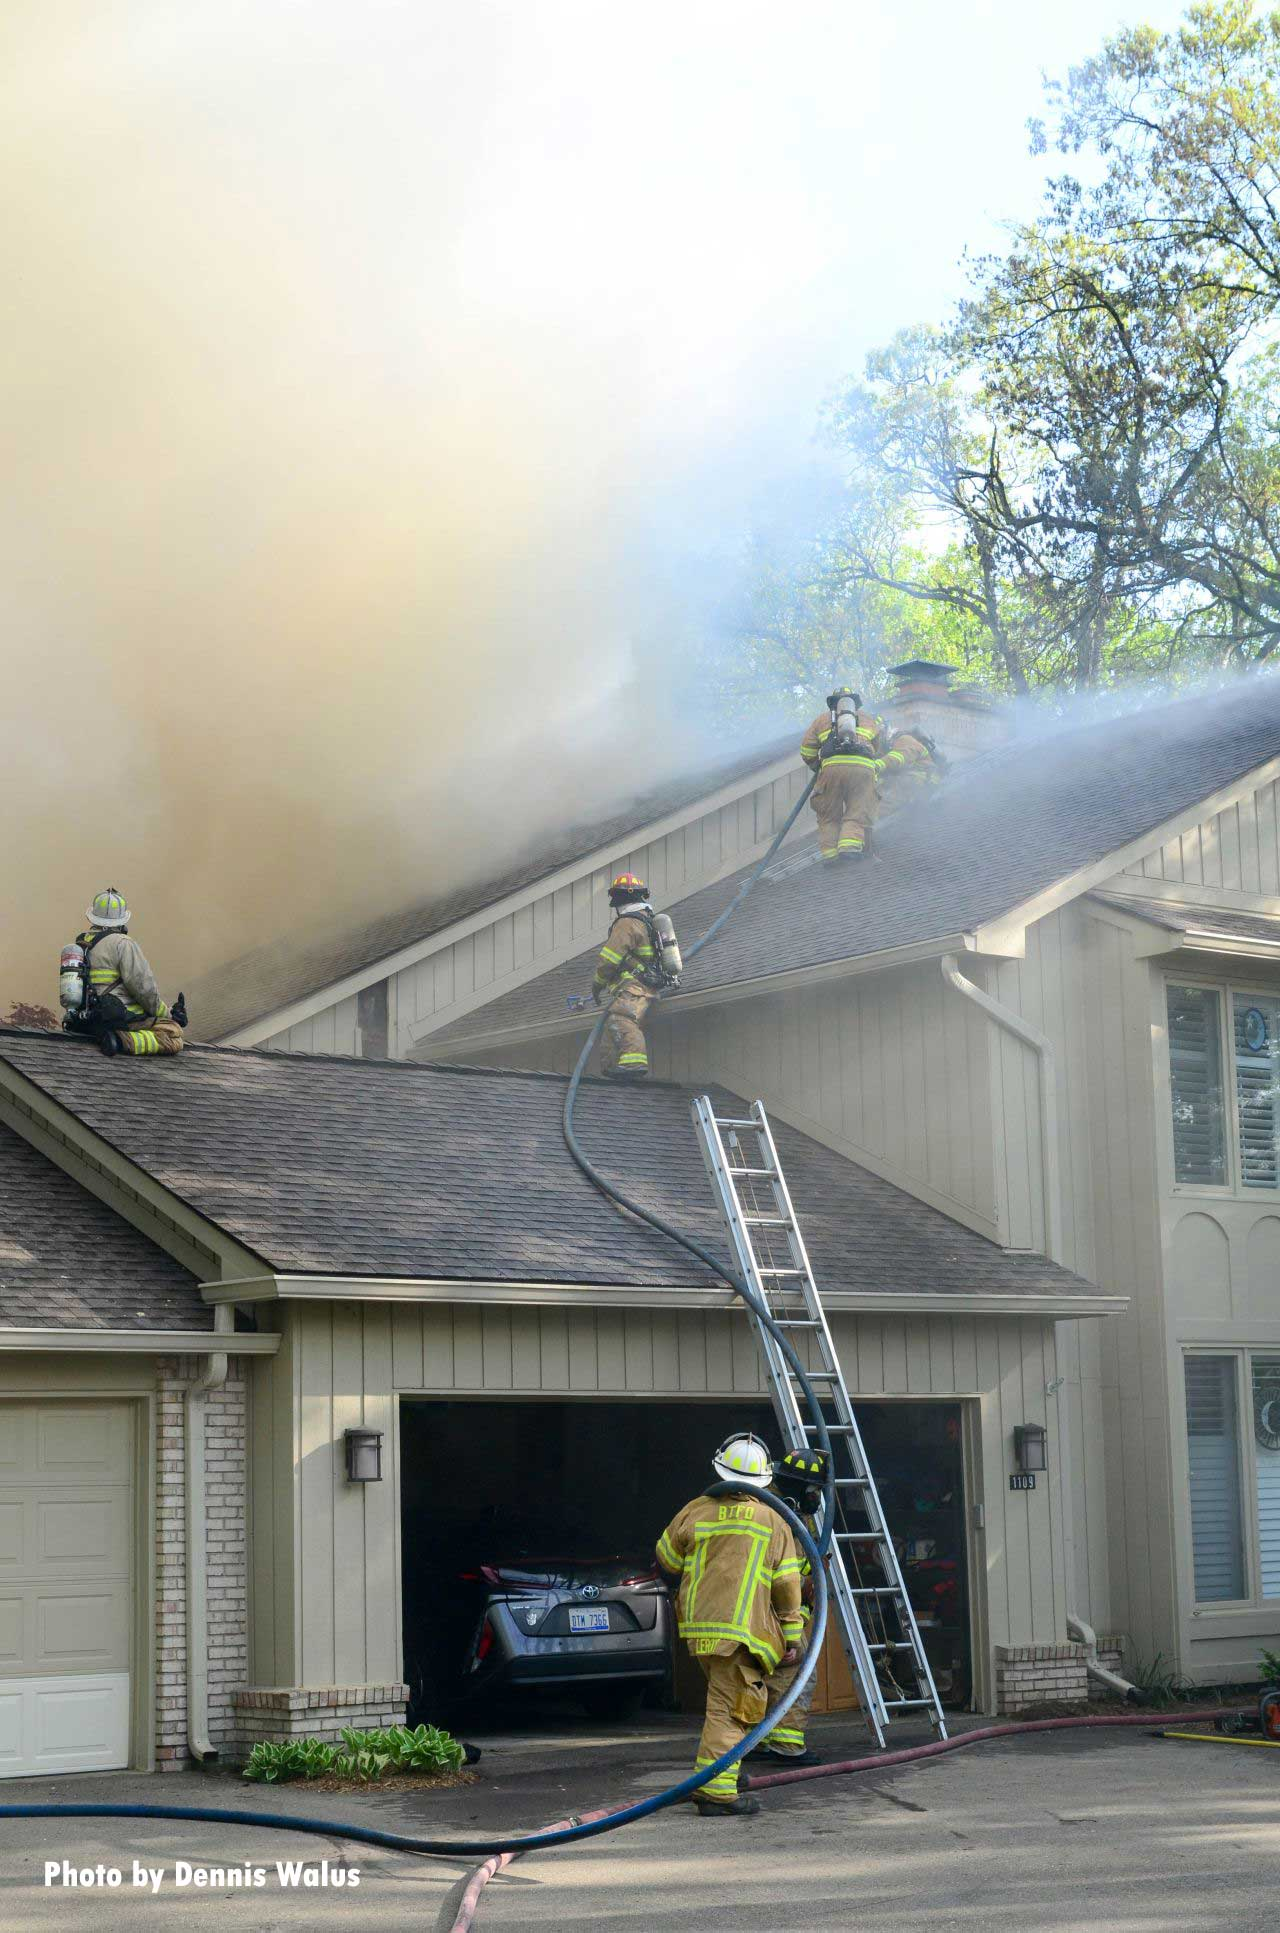 Firefighters operate on the roof of the building during a condo fire